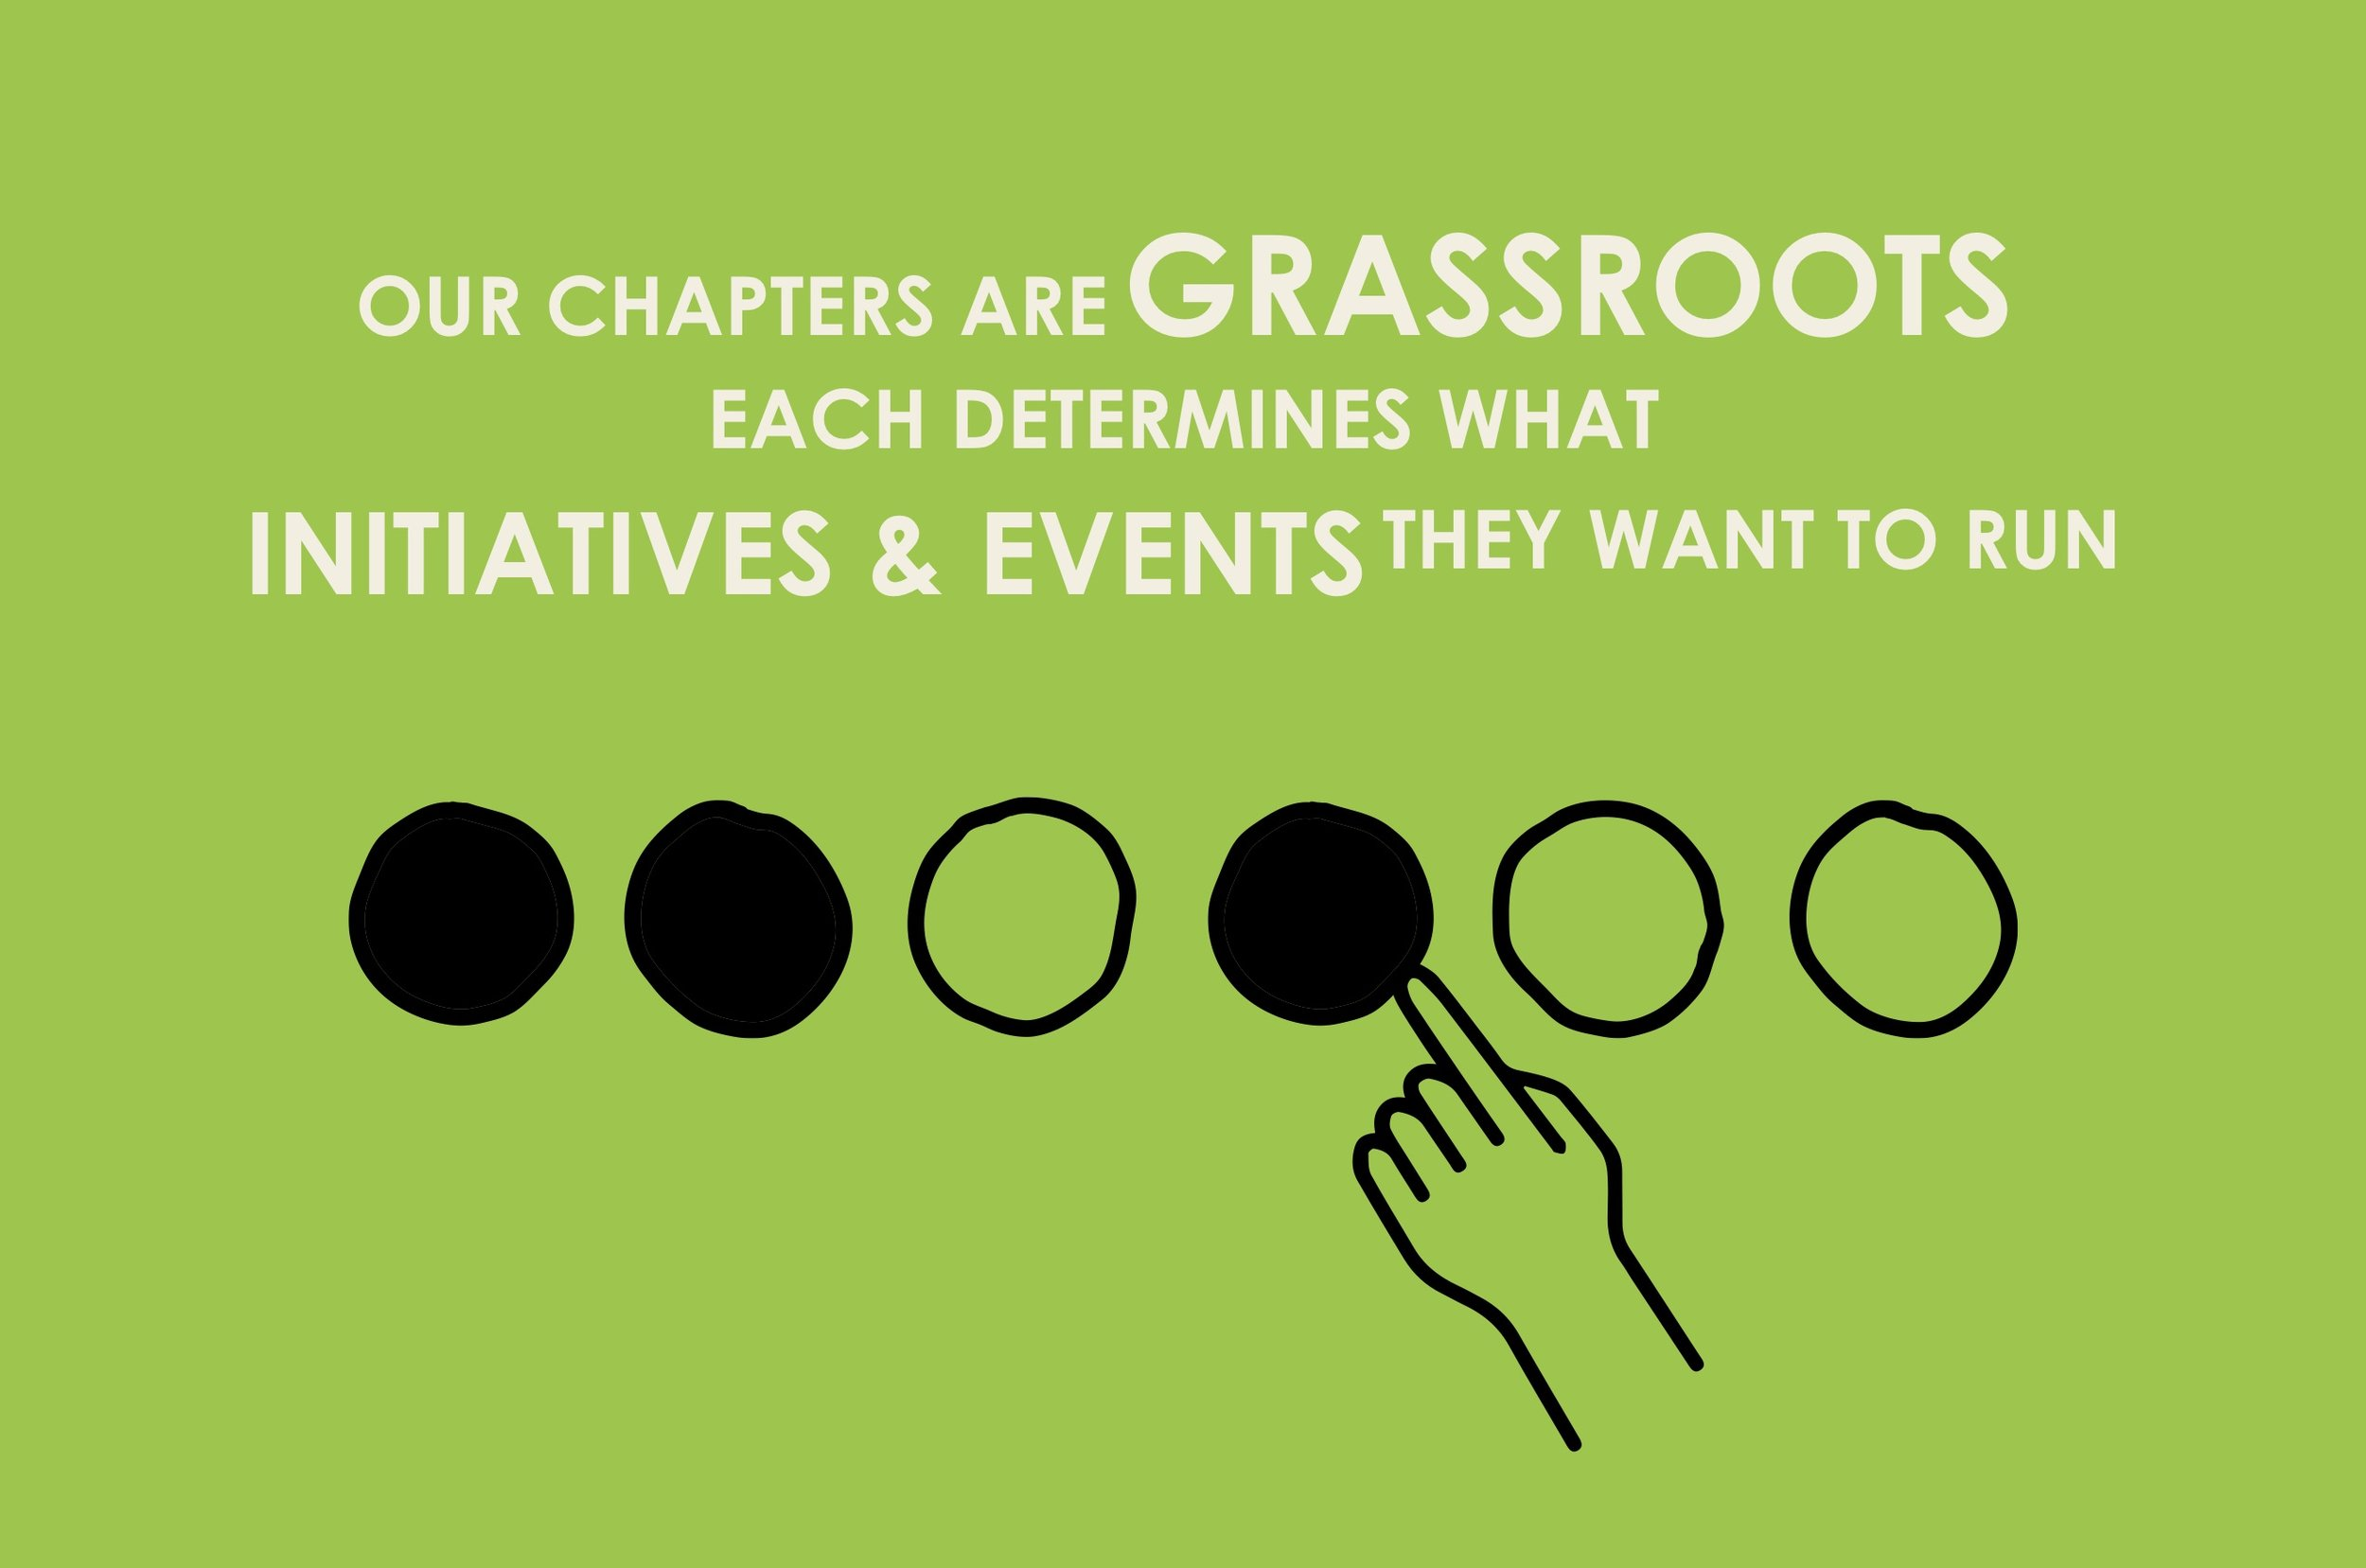 Our chapters are grass roots, each determines what initiatives and events they want to run.